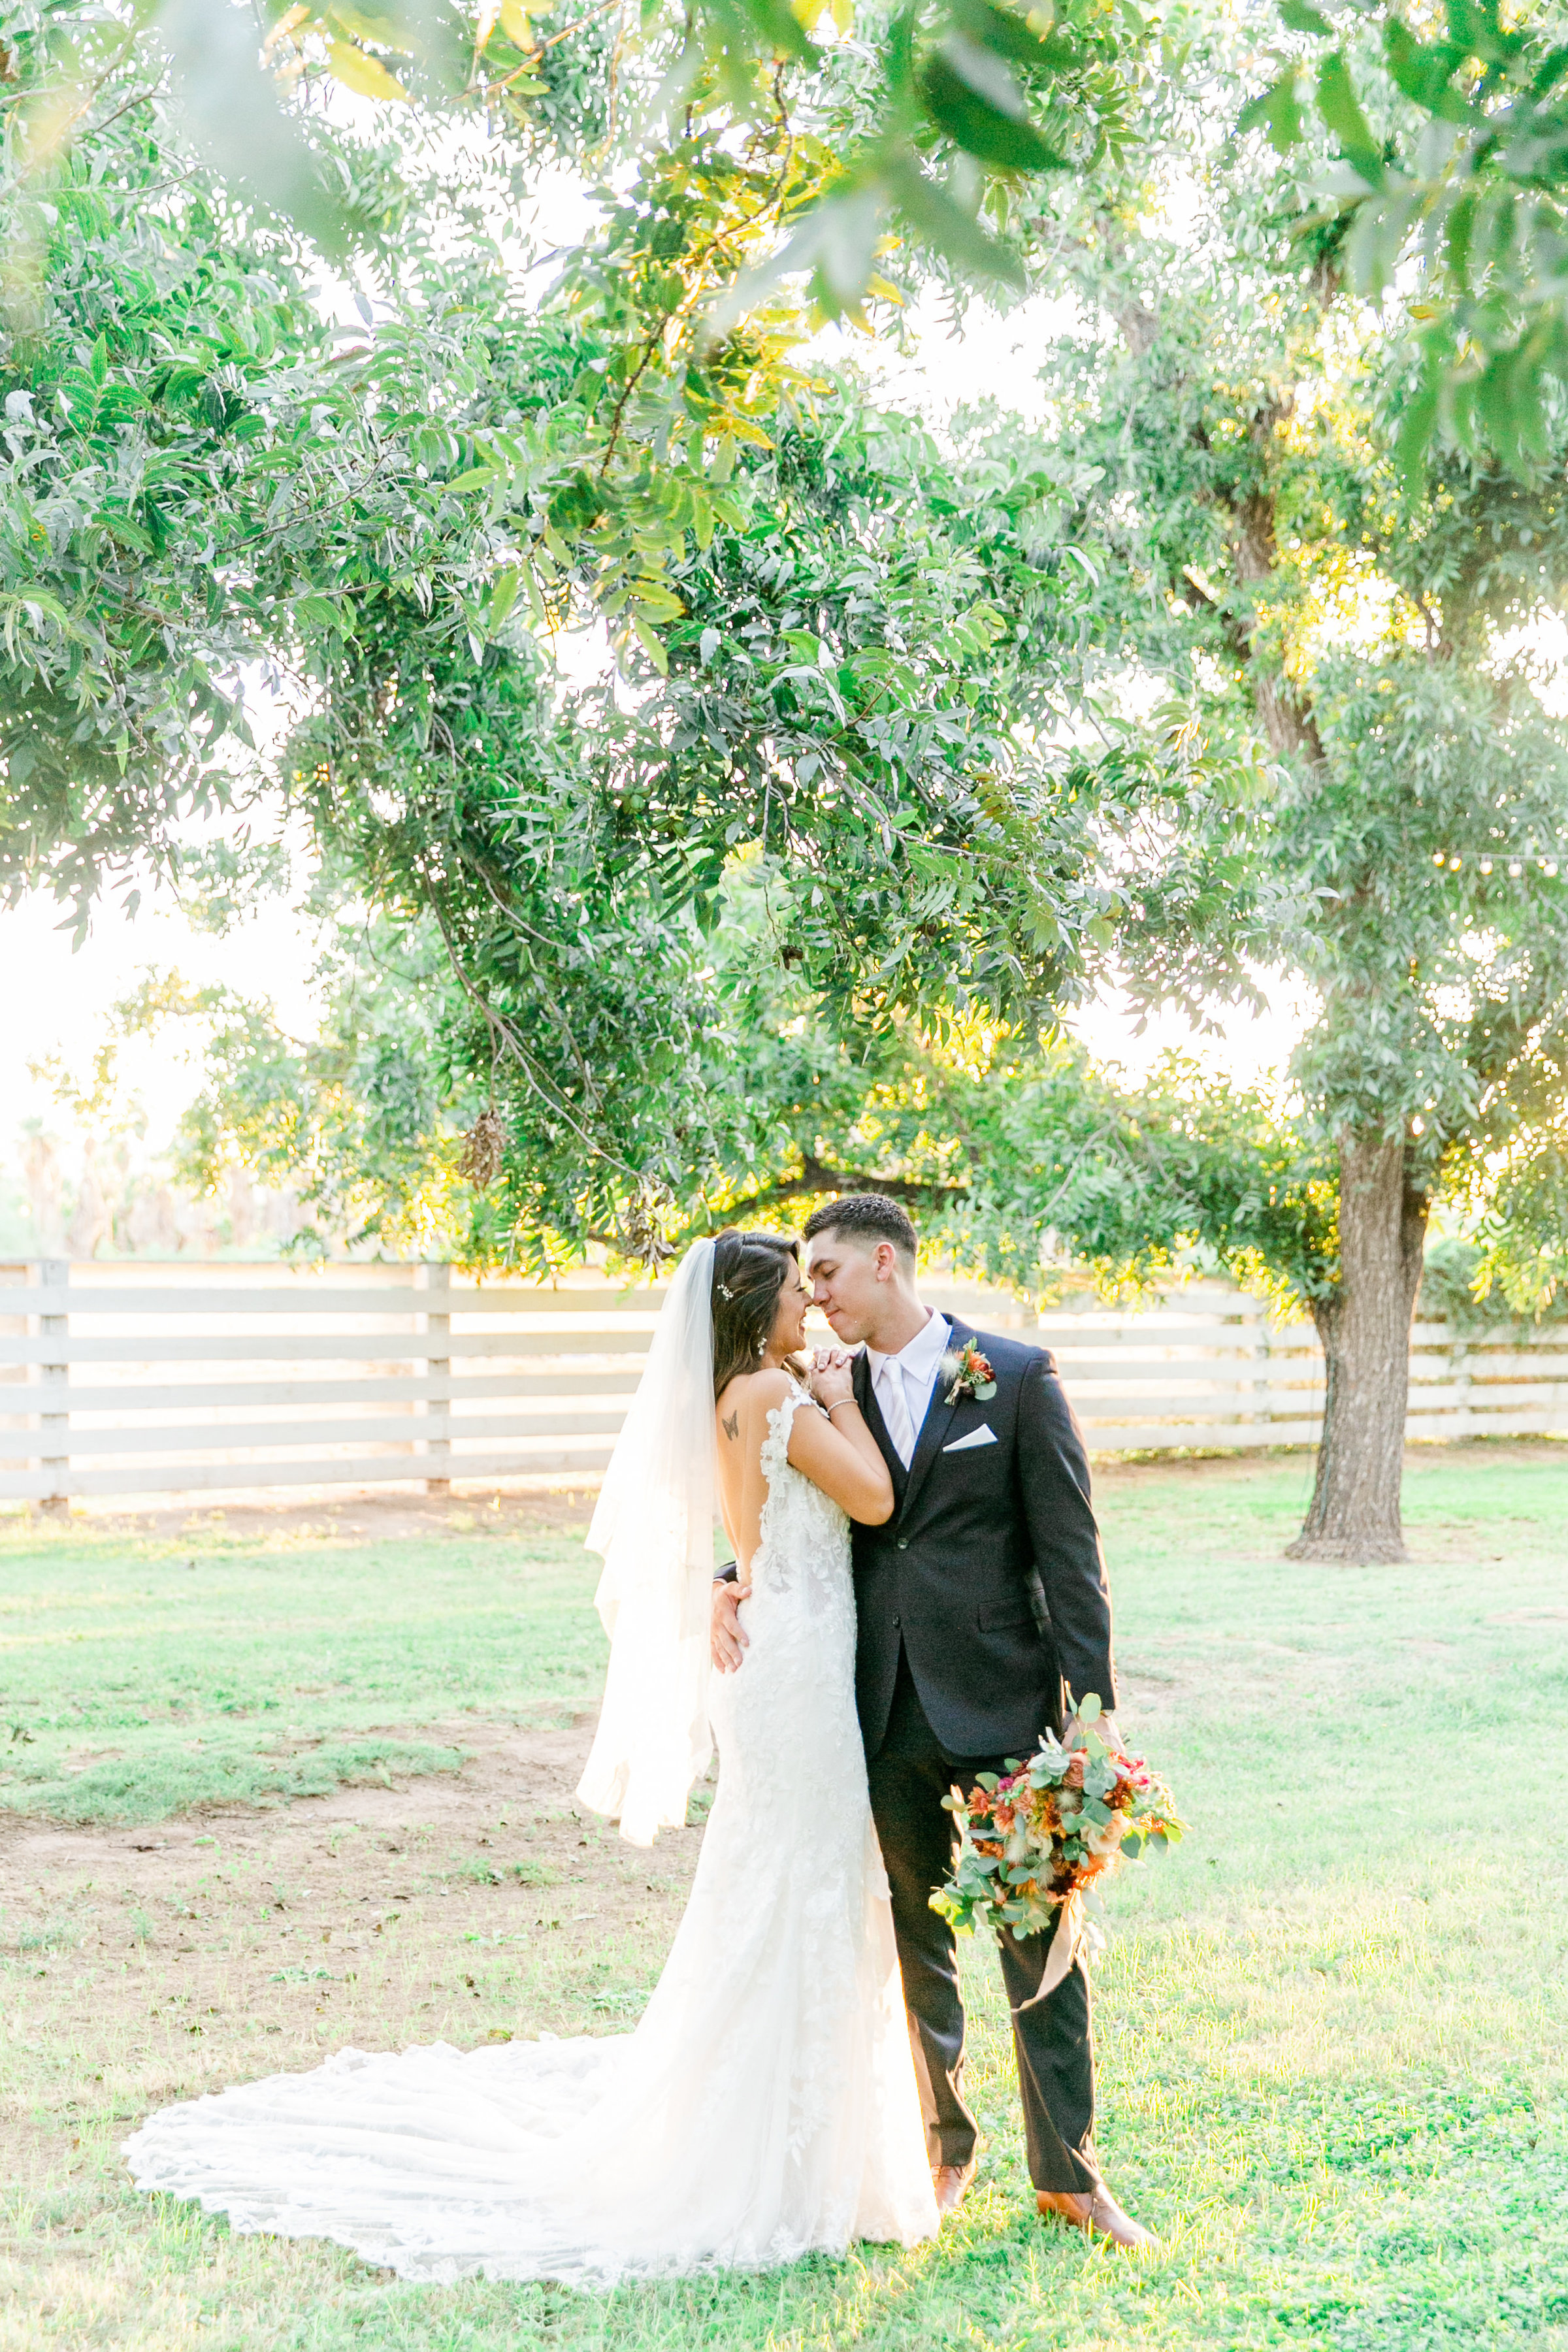 Karlie Colleen Photography - Phoenix Arizona - Farm At South Mountain Venue - Vanessa & Robert-580